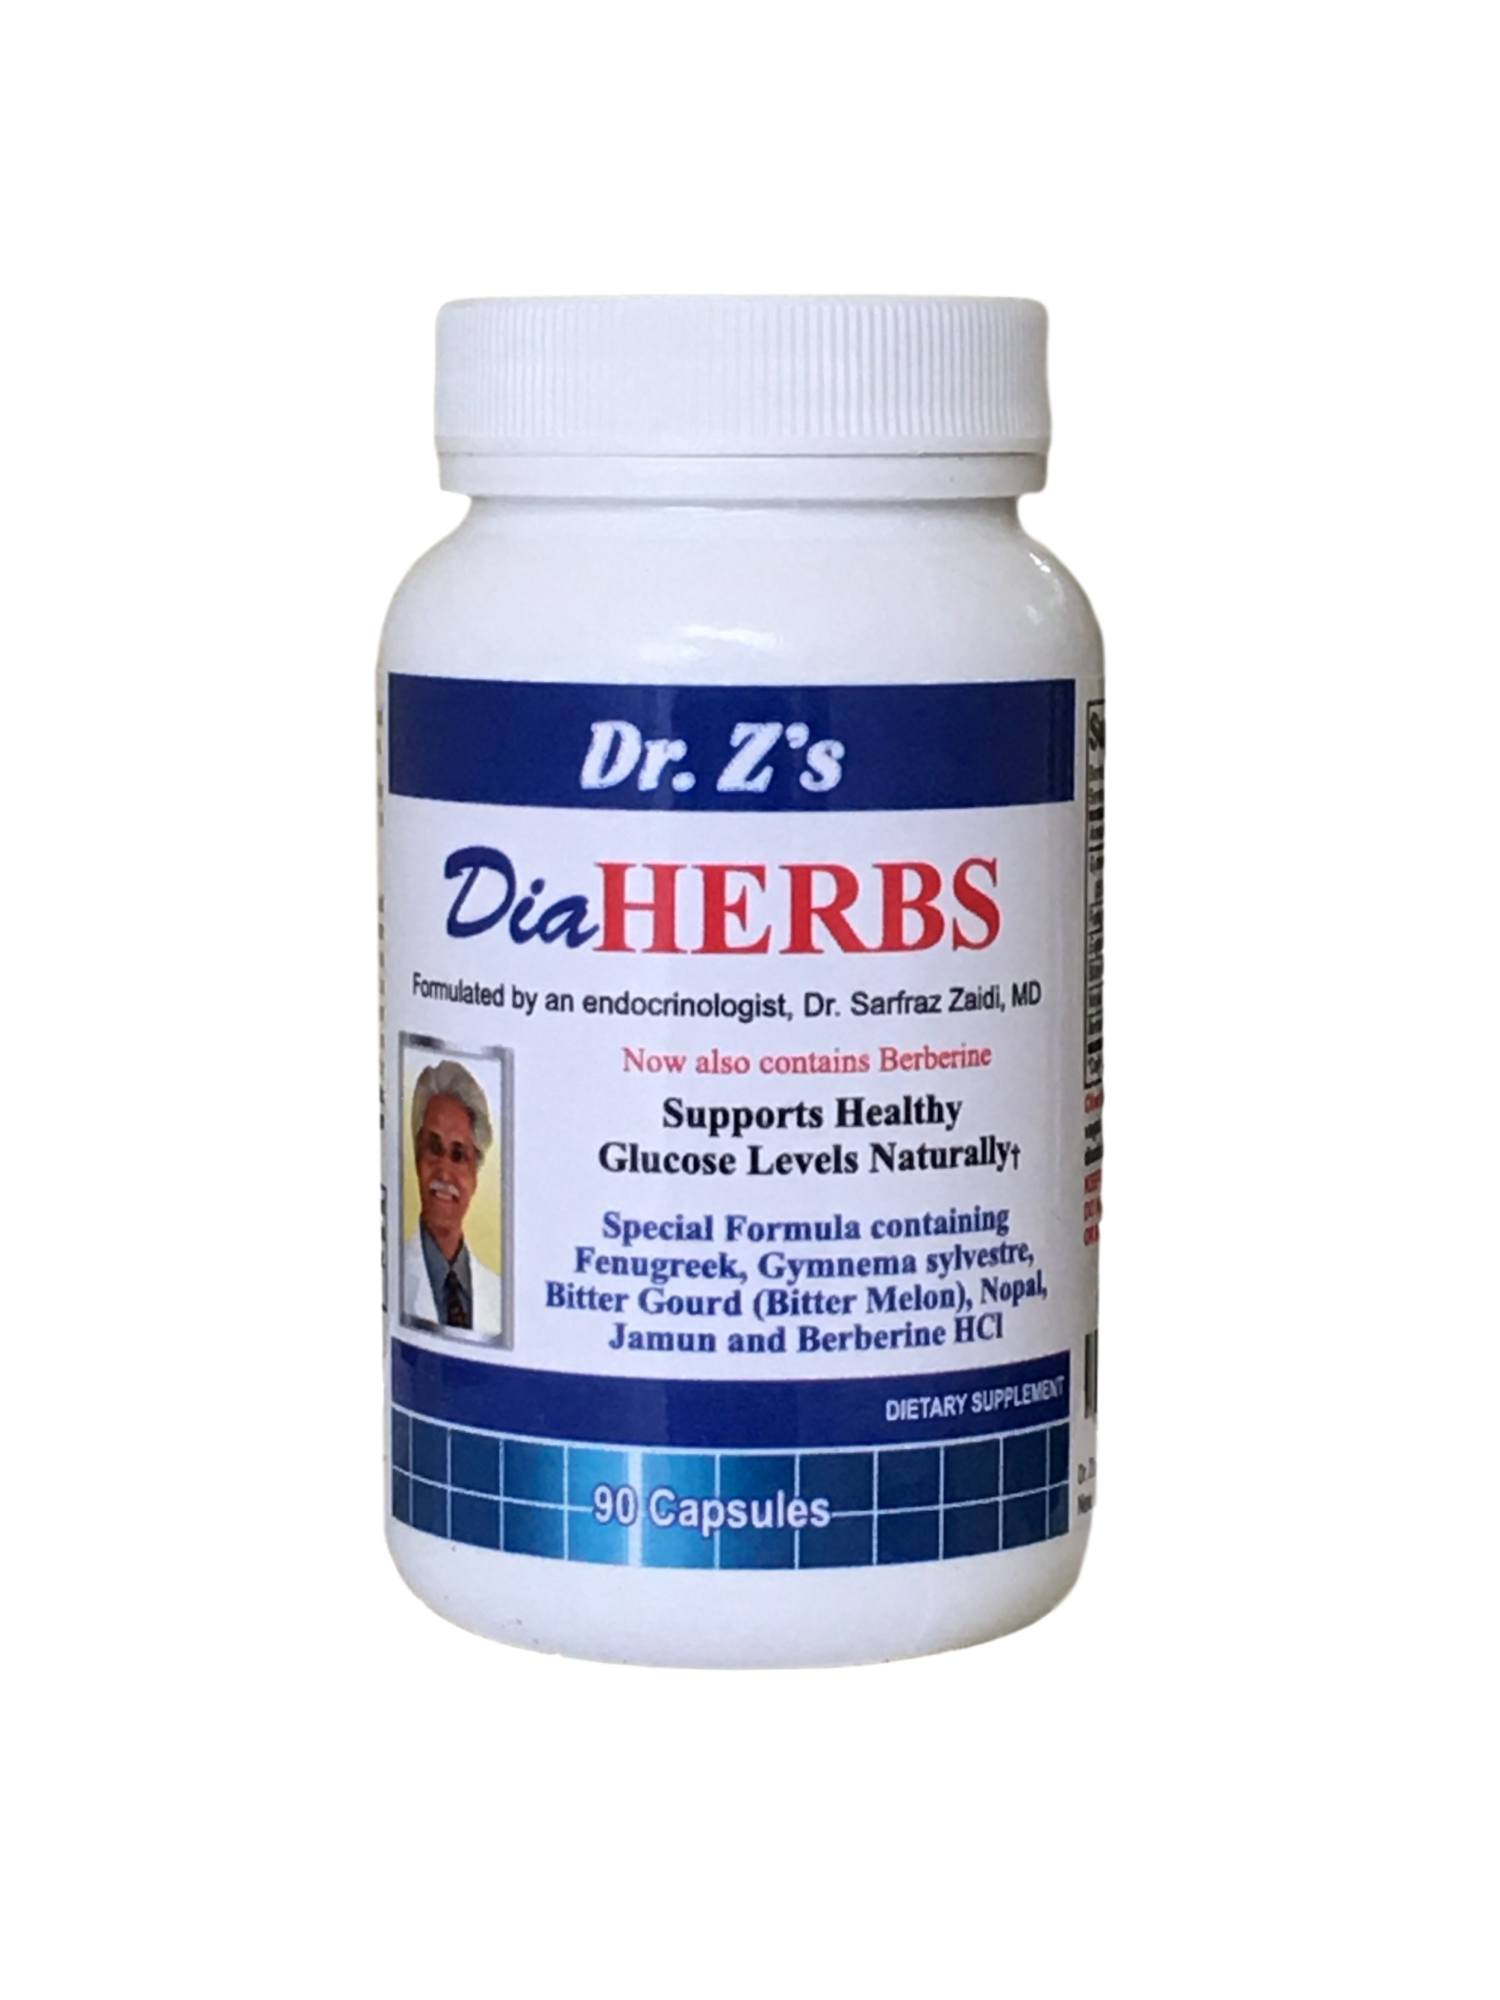 Diaherbs - a special herbal formula by dr. Zaidi